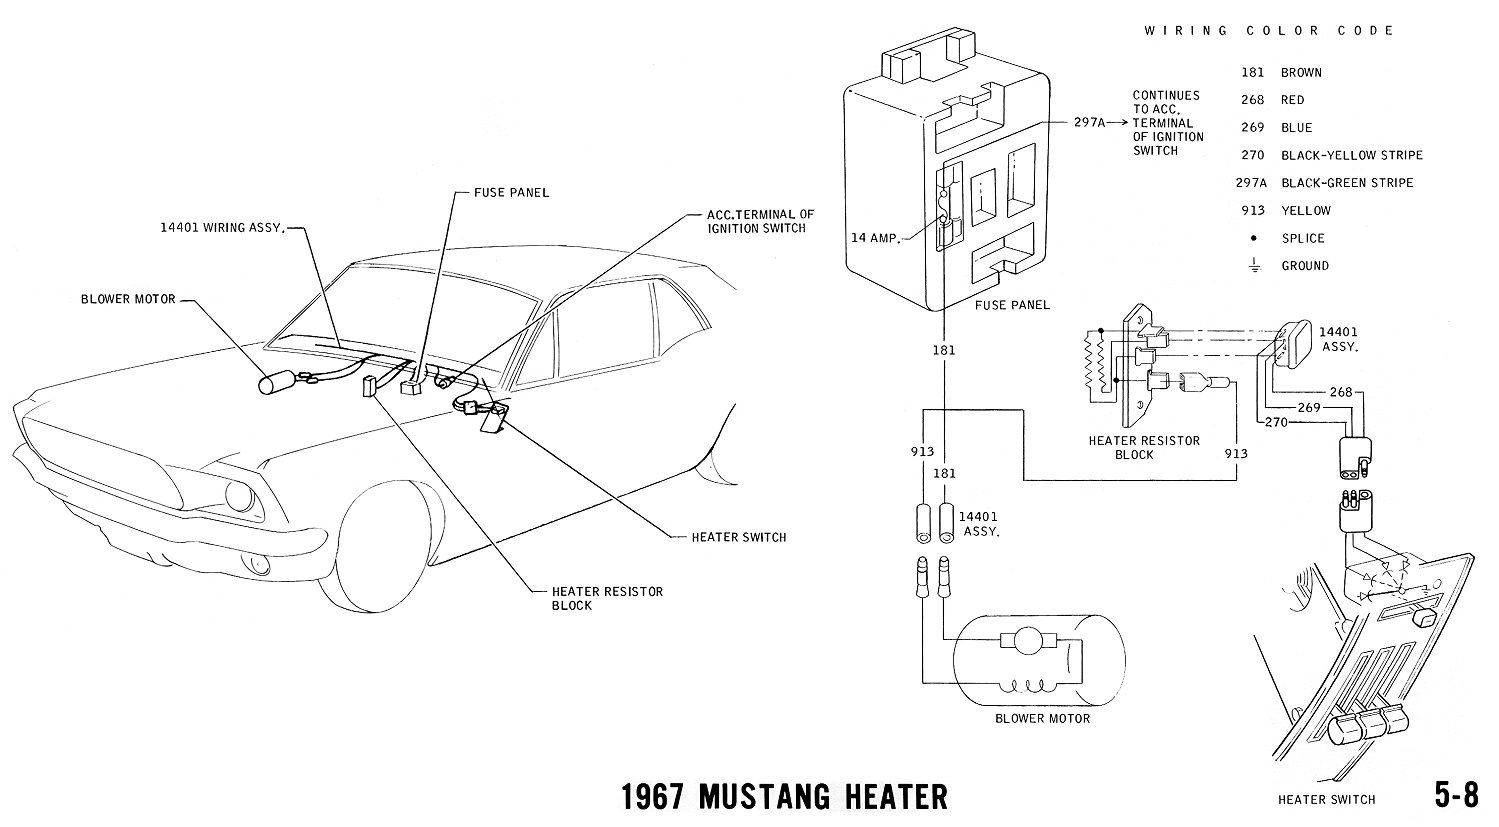 hight resolution of mustang blower motor wiring diagram wiring diagram centre 1967 mustang wiring and vacuum diagrams average joe